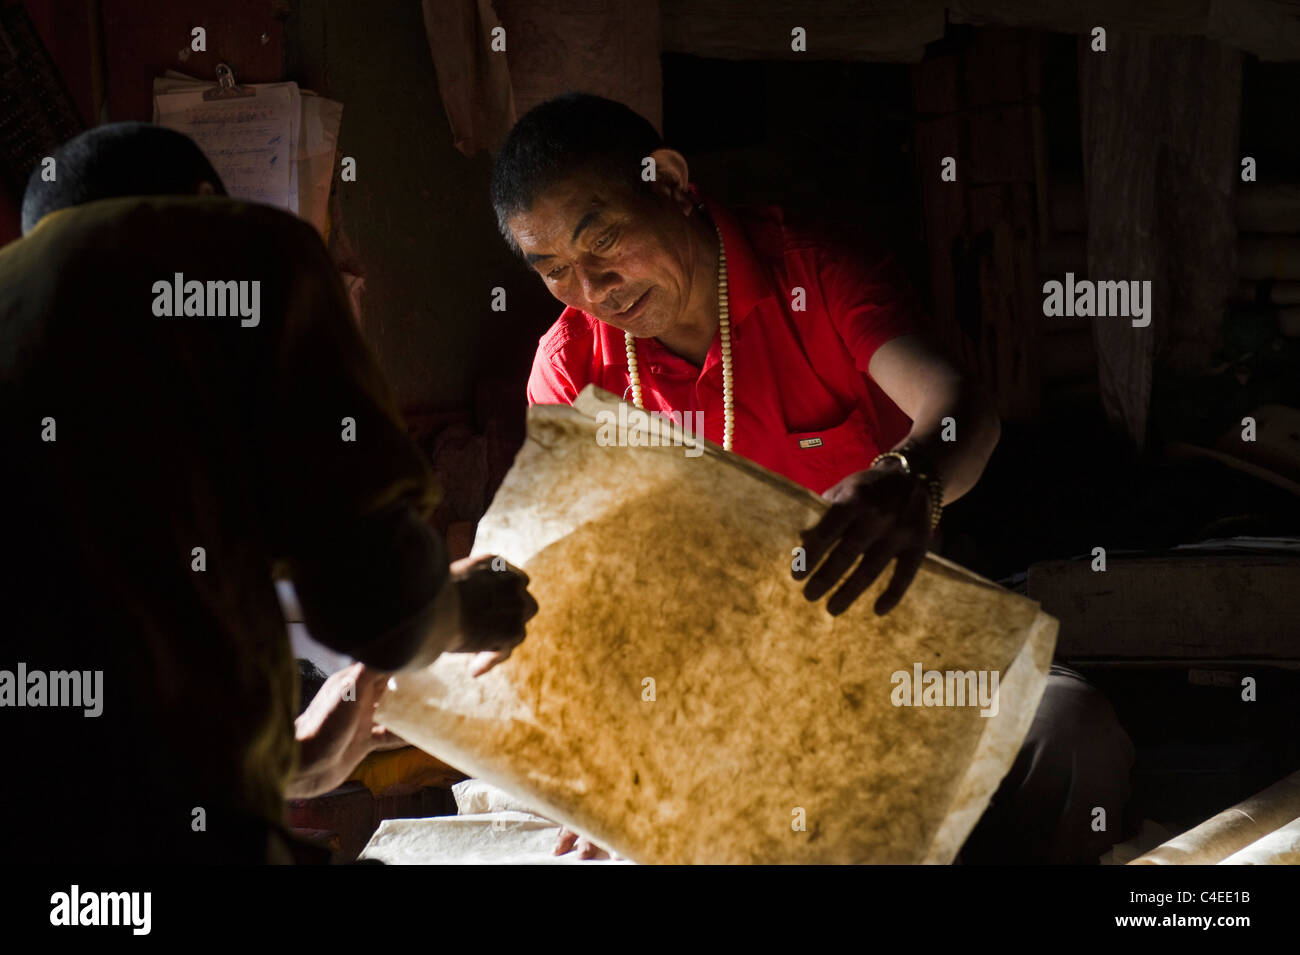 Checking paper quality at Dege Scripture Printing House, Dege, Sichuan, China - - Stock Image